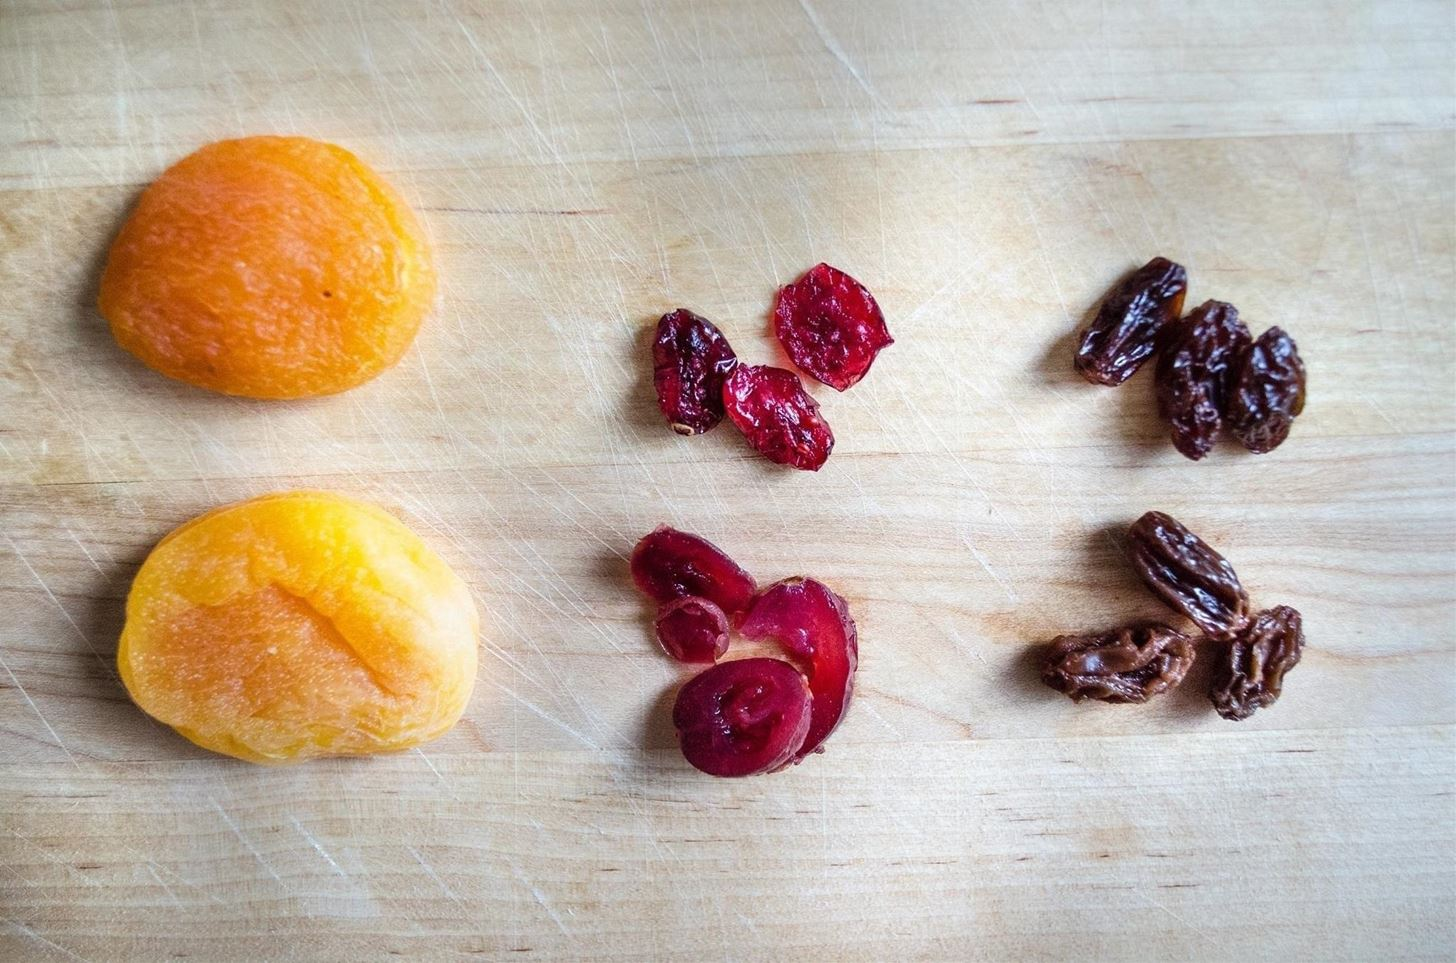 Rehydrate Rock-Hard Dried Fruit with This Clever Hack